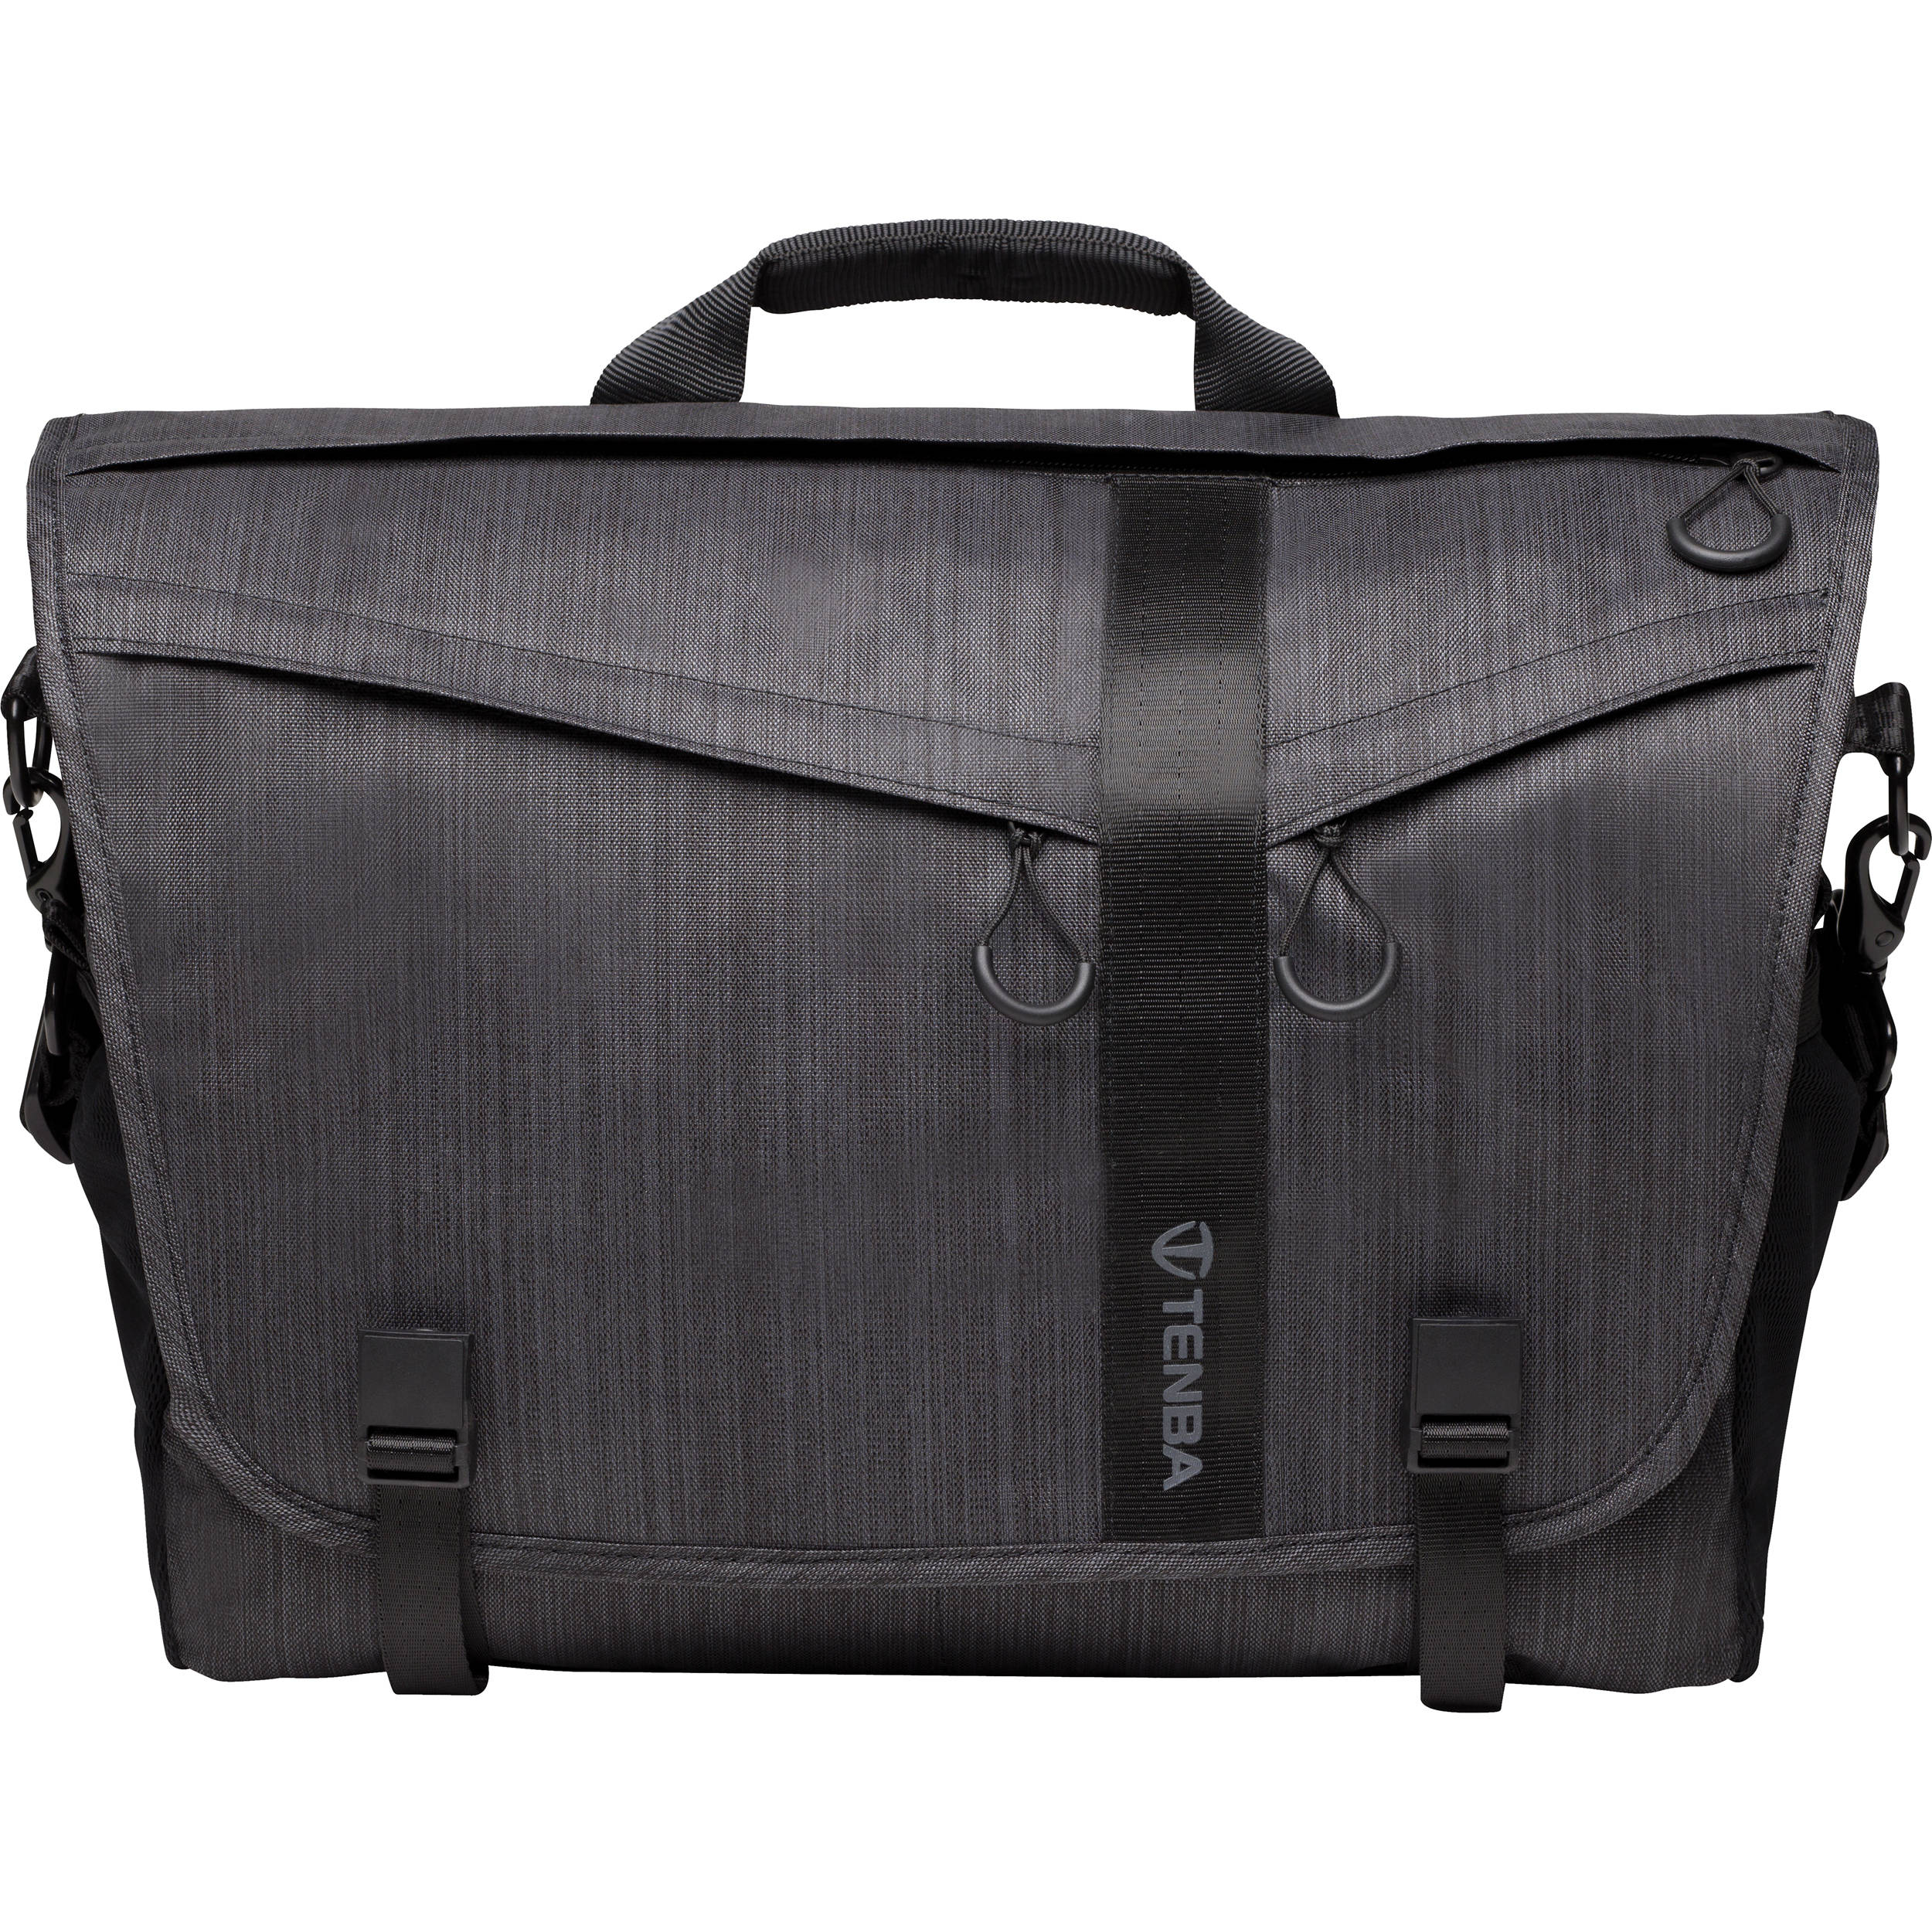 Tenba DNA 15 Messenger Bag (Graphite) 638-381 B&H Photo Video